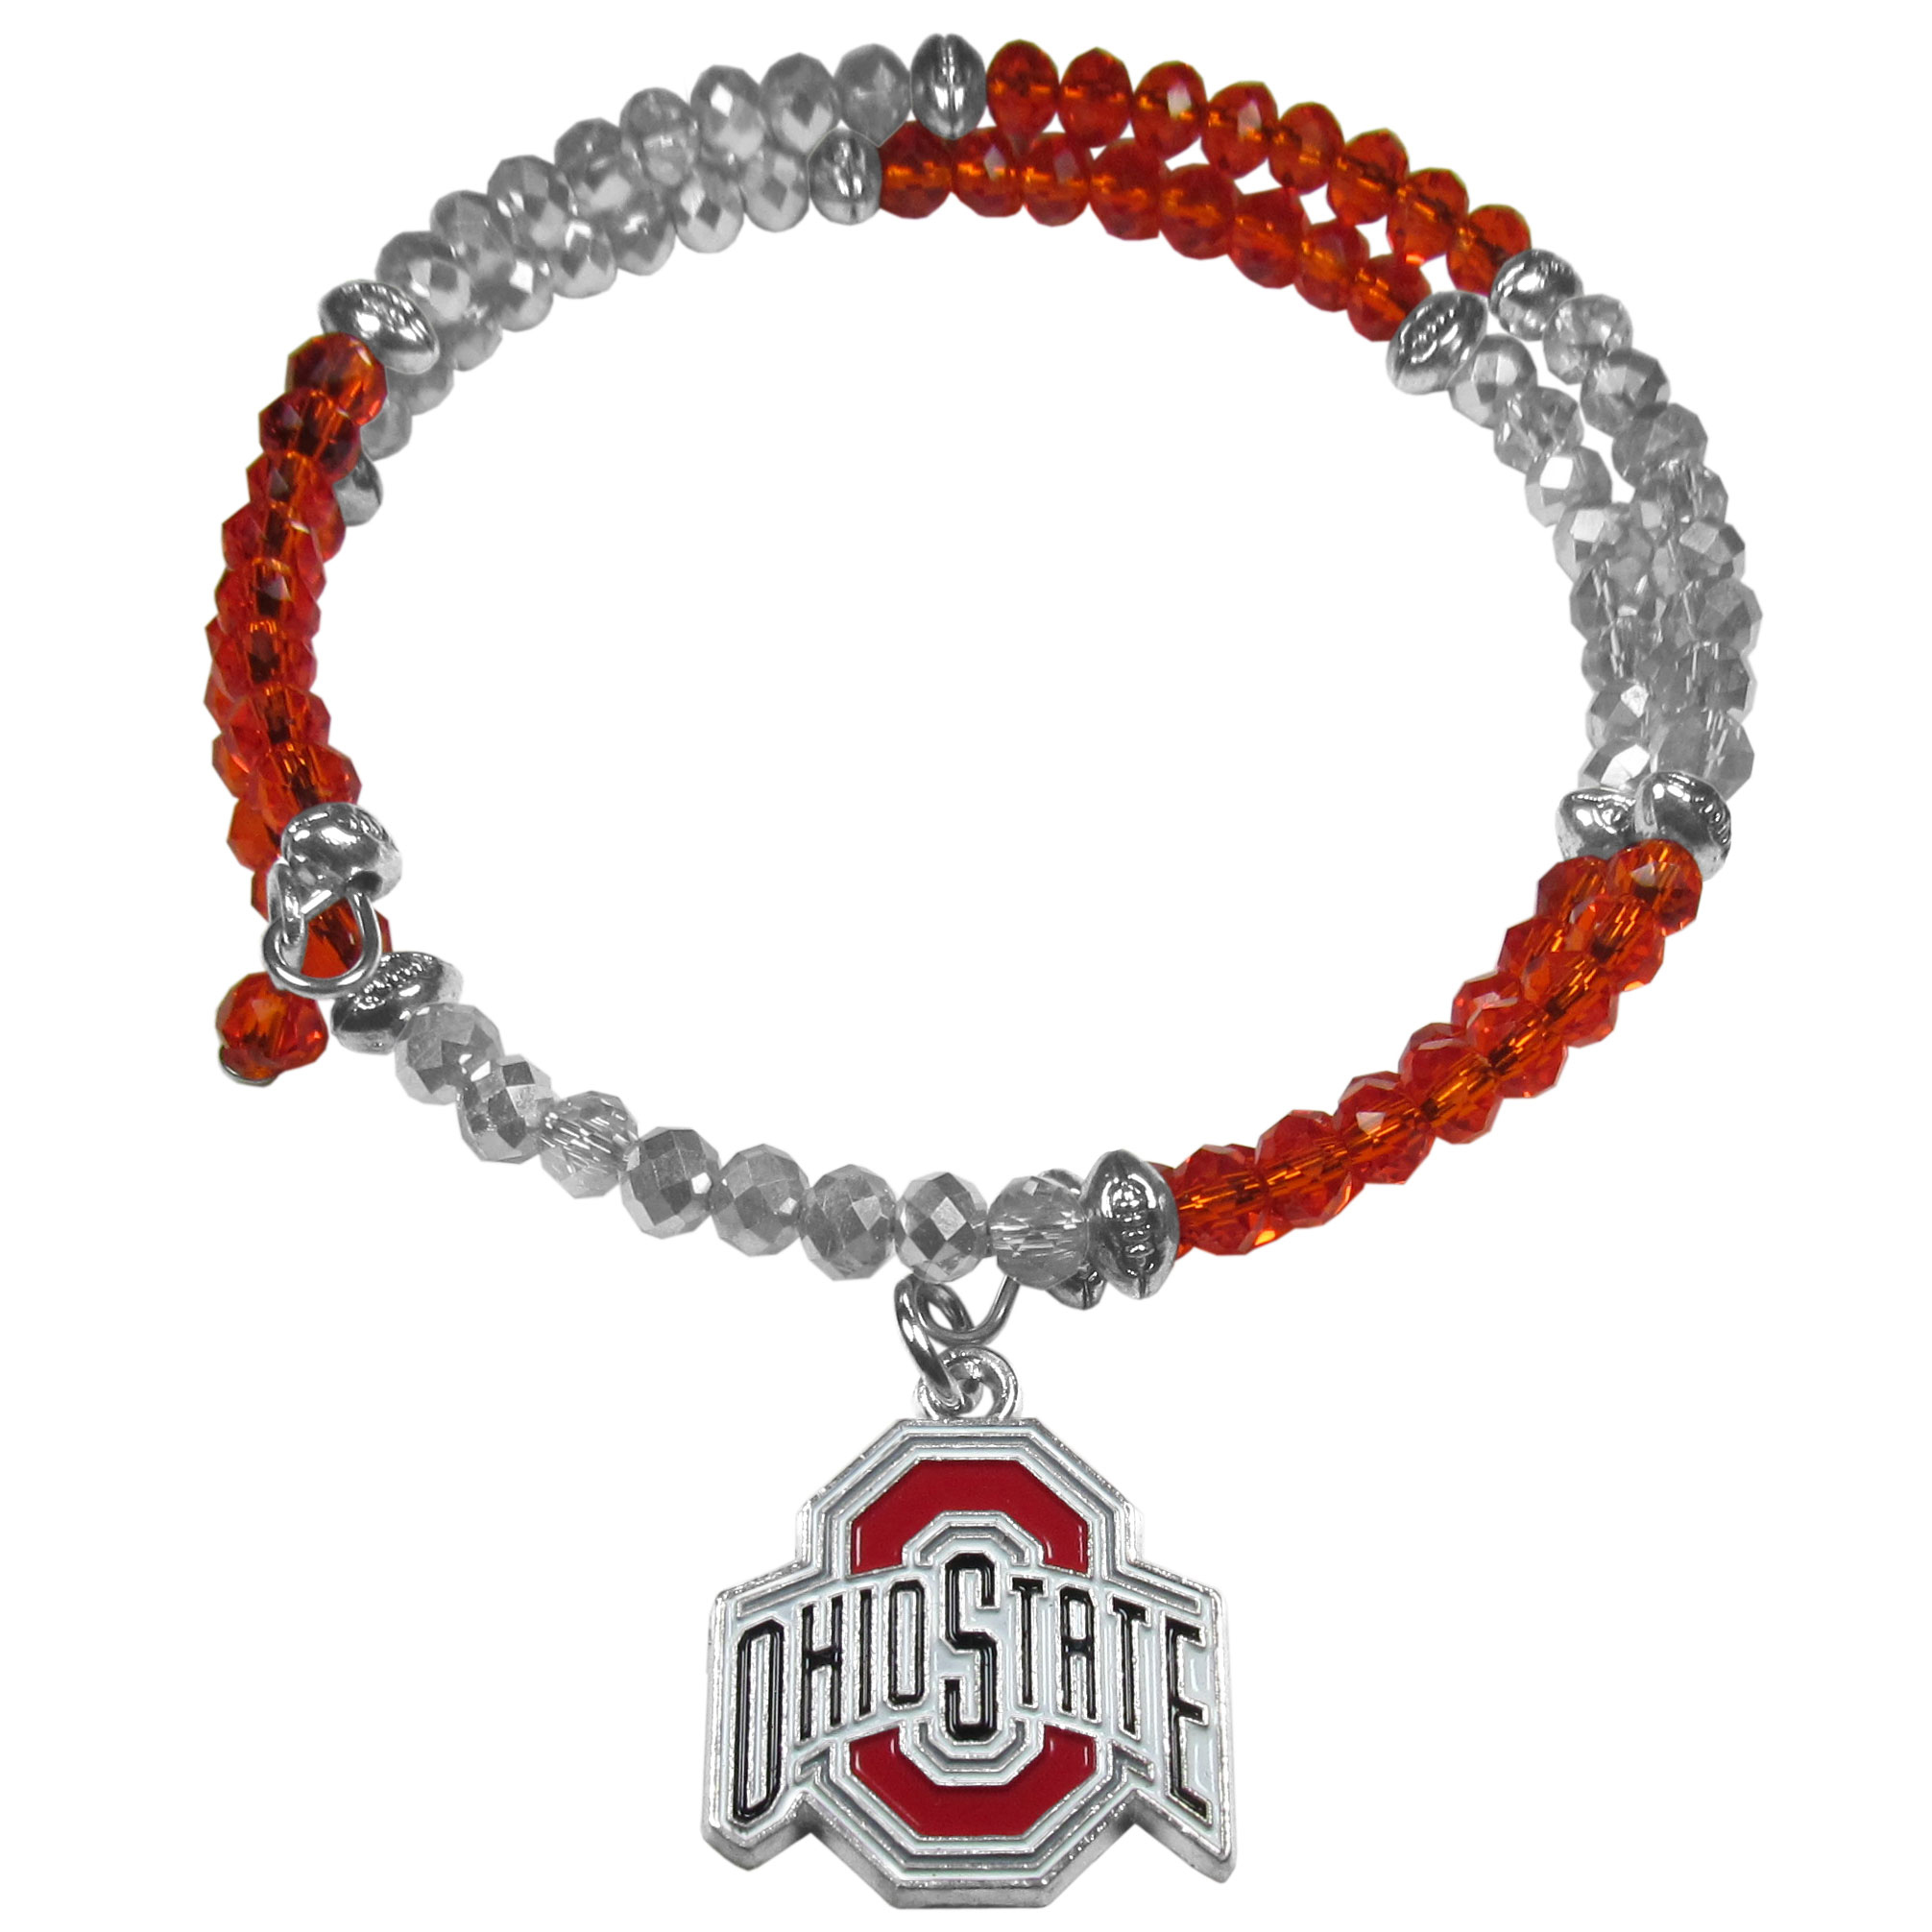 Ohio St. Buckeyes Crystal Memory Wire Bracelet - Our Ohio St. Buckeyes memory wire crystal bracelet is trendy way to show off your love of the game. The double wrap bracelet is completely covered in 4 mm crystals that are broken up with adorable football beads creating a designer look with a sporty twist. The bracelet features a fully cast, metal team charm that has expertly enameled team colors. This fashion jewelry piece is a must-have for the die-hard fan that chic look that can dress up any outfit.